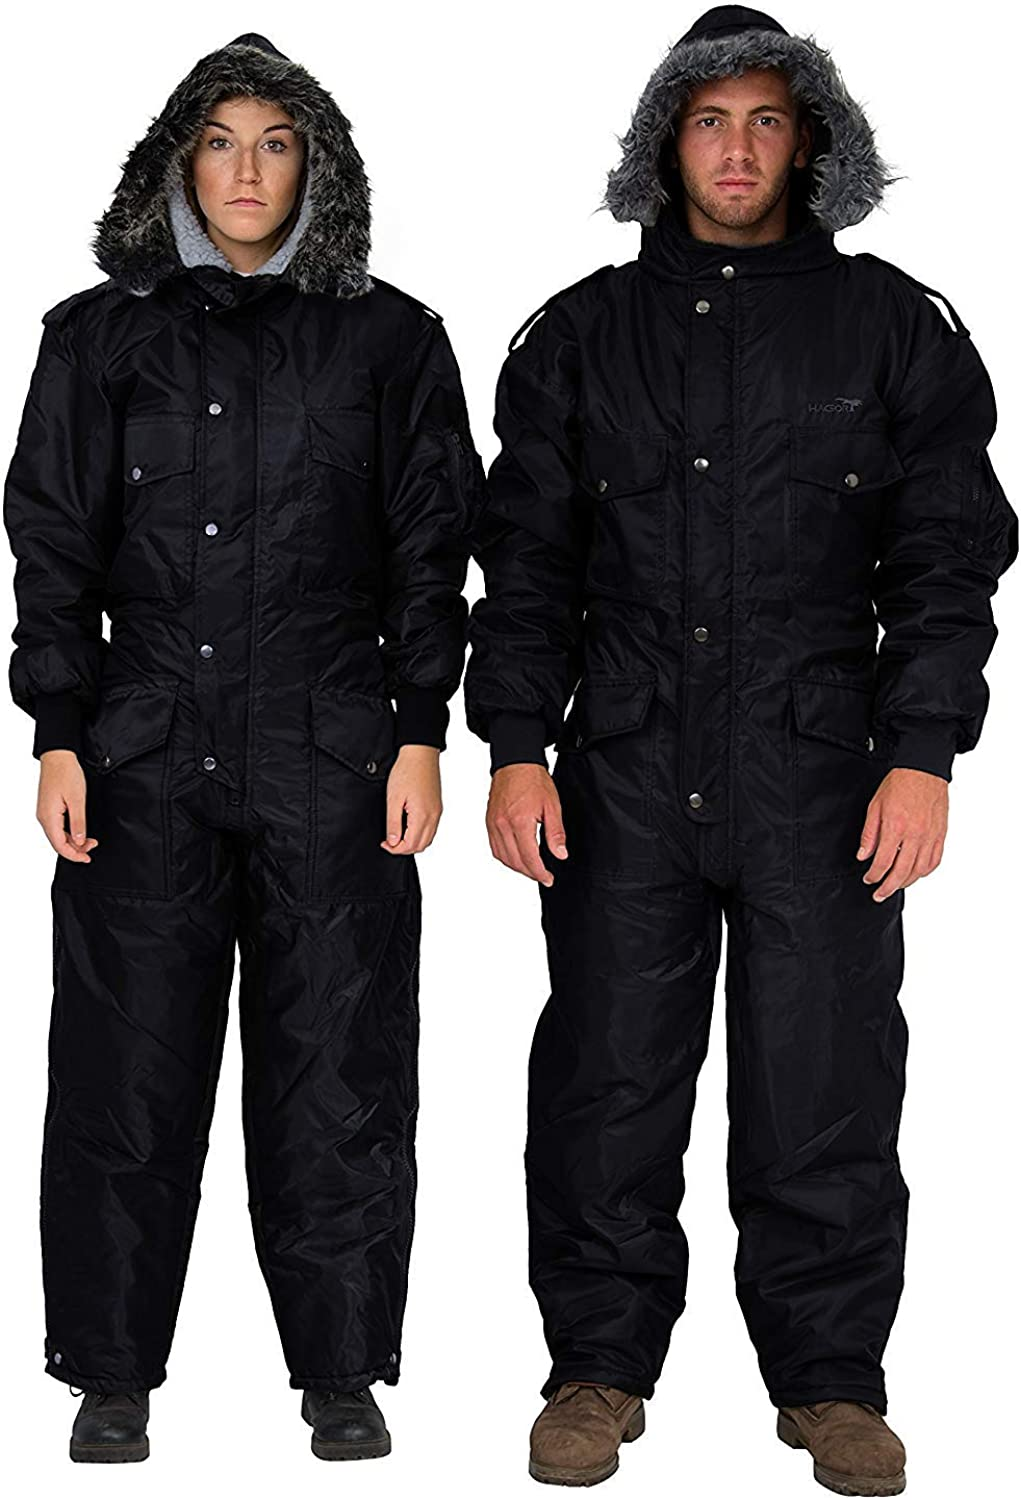 Black IDF Snowsuit Winter Clothing Snow Ski Suit Coverall Insulated Suit: Clothing